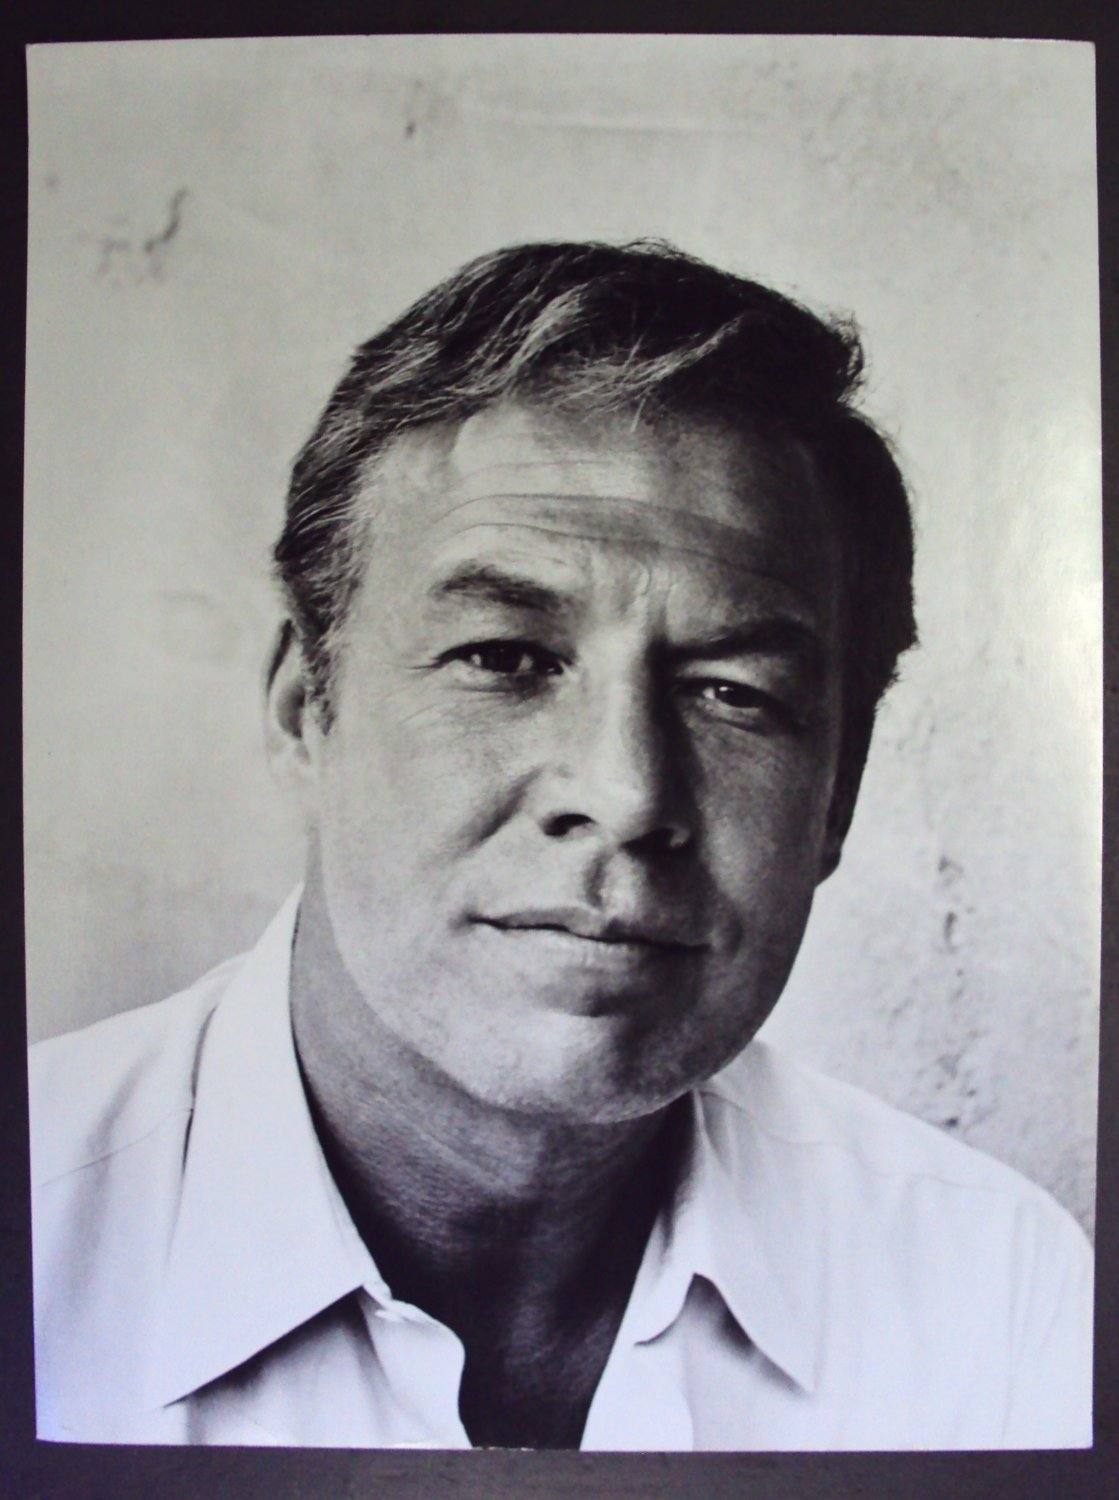 george kennedy movies - photo #35